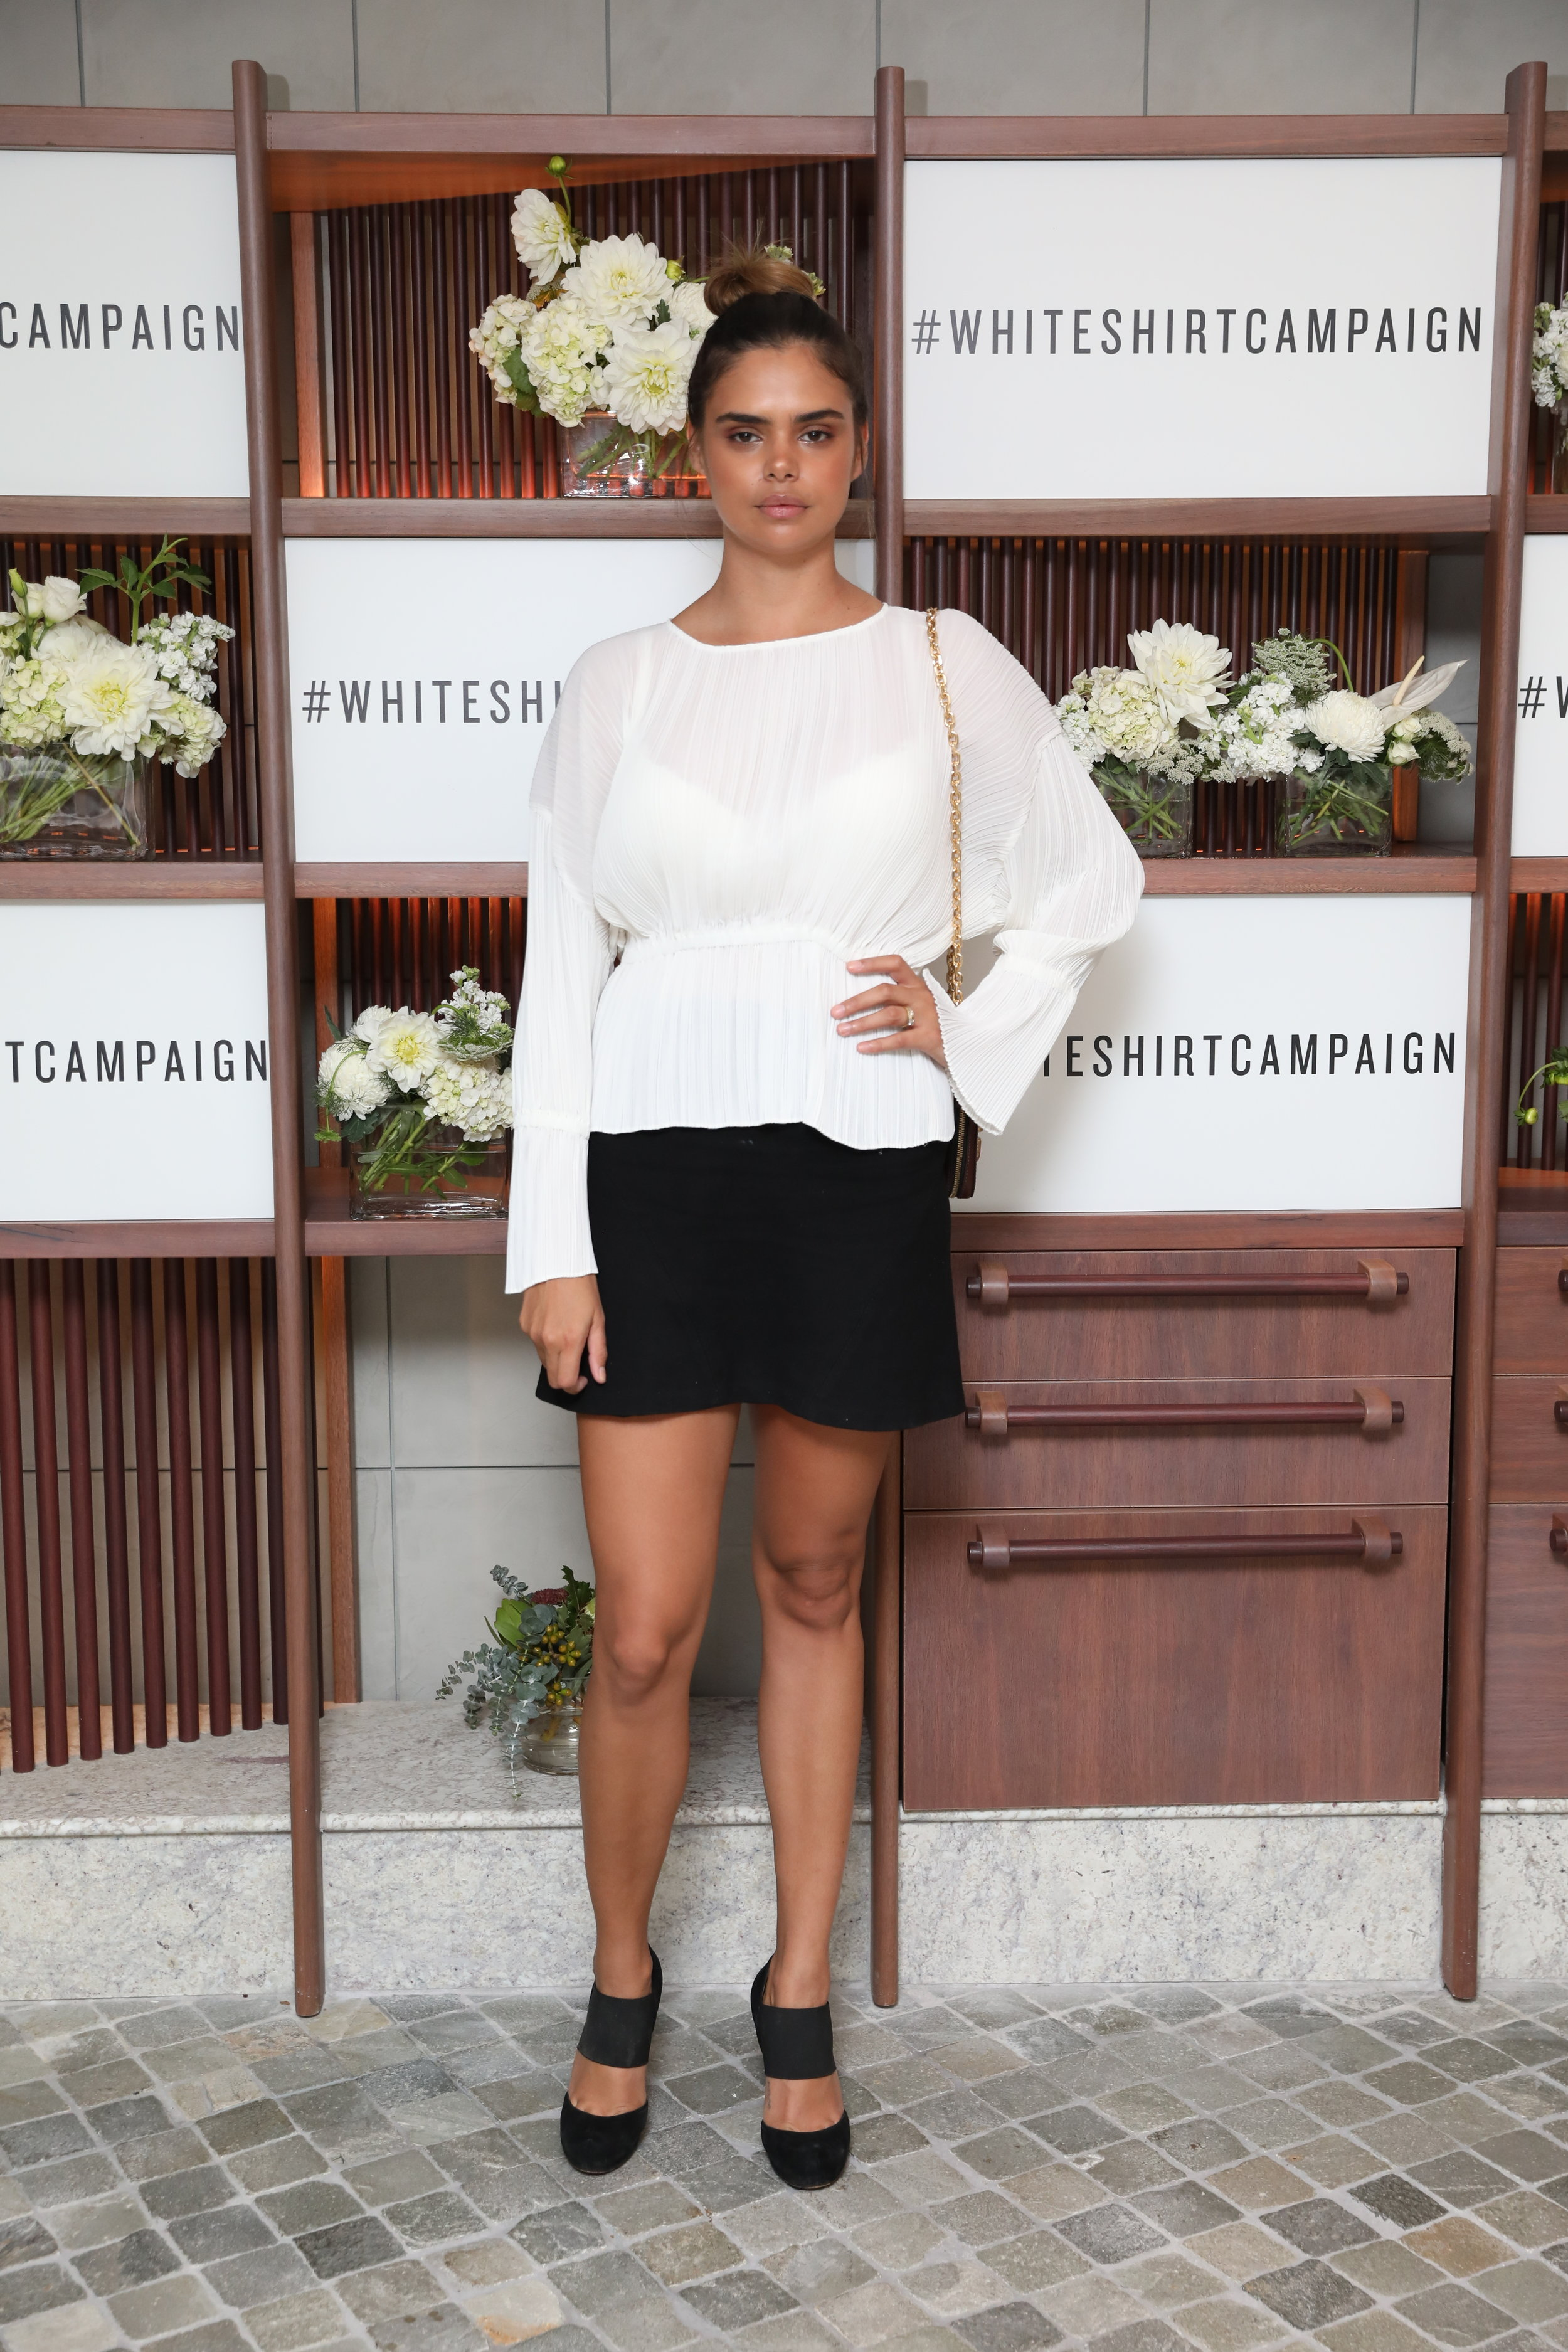 kate-and-co-projects-witchery-ocrf-white-shirt-campaign-2018-samantha-harris.JPG